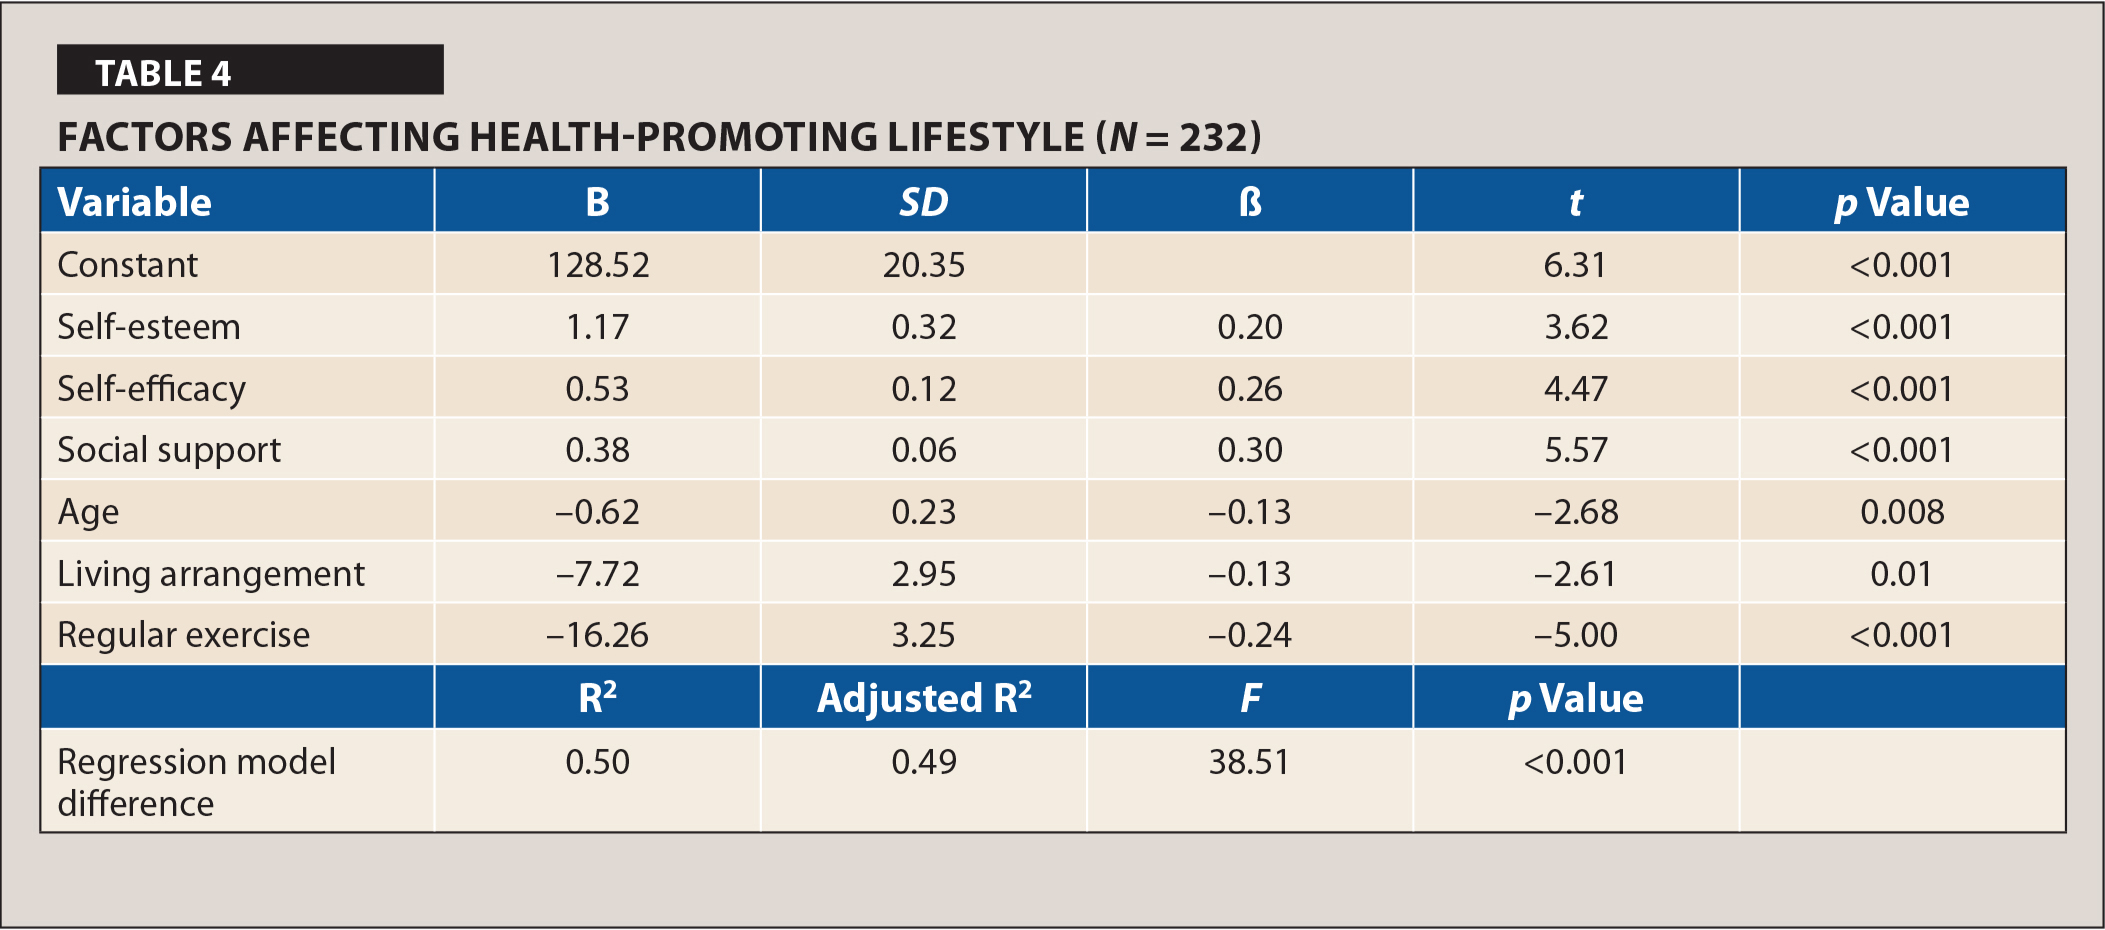 Factors Affecting Health-Promoting Lifestyle (N = 232)